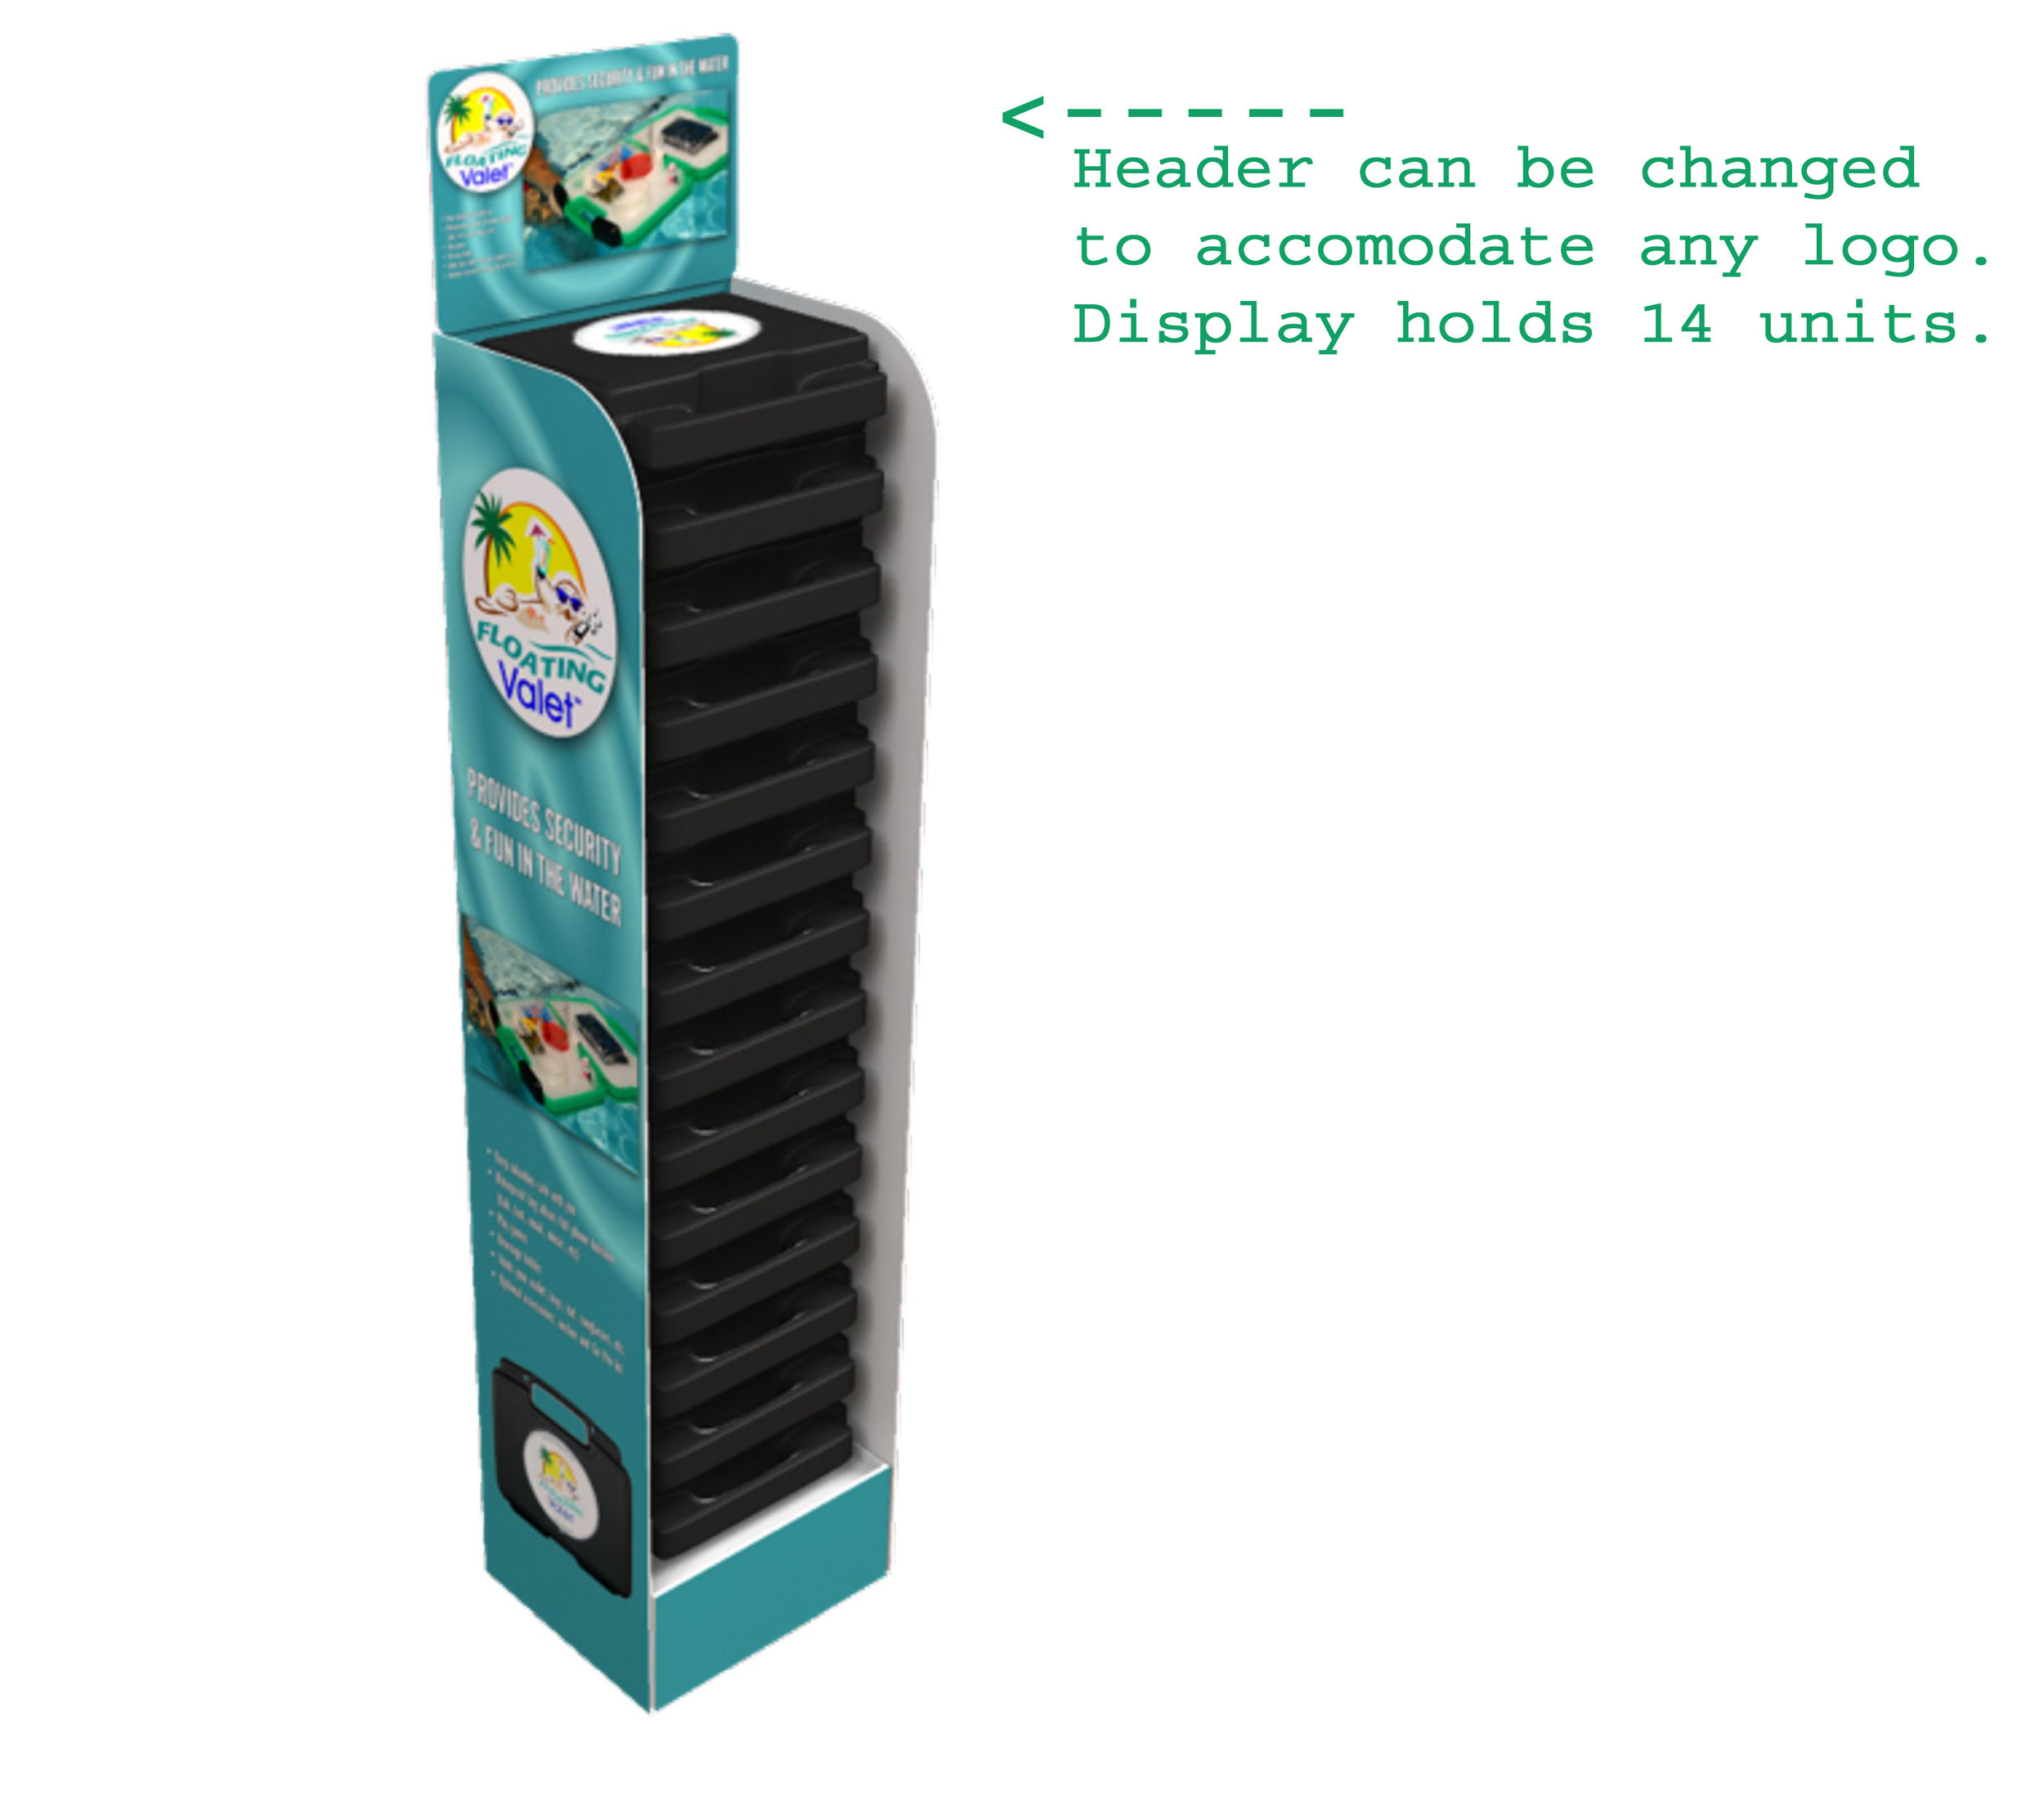 This handy display stand is a sleek way to present Floating Valets for sale in your store that requires less than 1 square foot of floorspace! The sides and header enthusiastically explain what the product does, and each Floating Valet interlocks as it is stacked on others, so there is no risk of anyever falling out the front of the display stand.